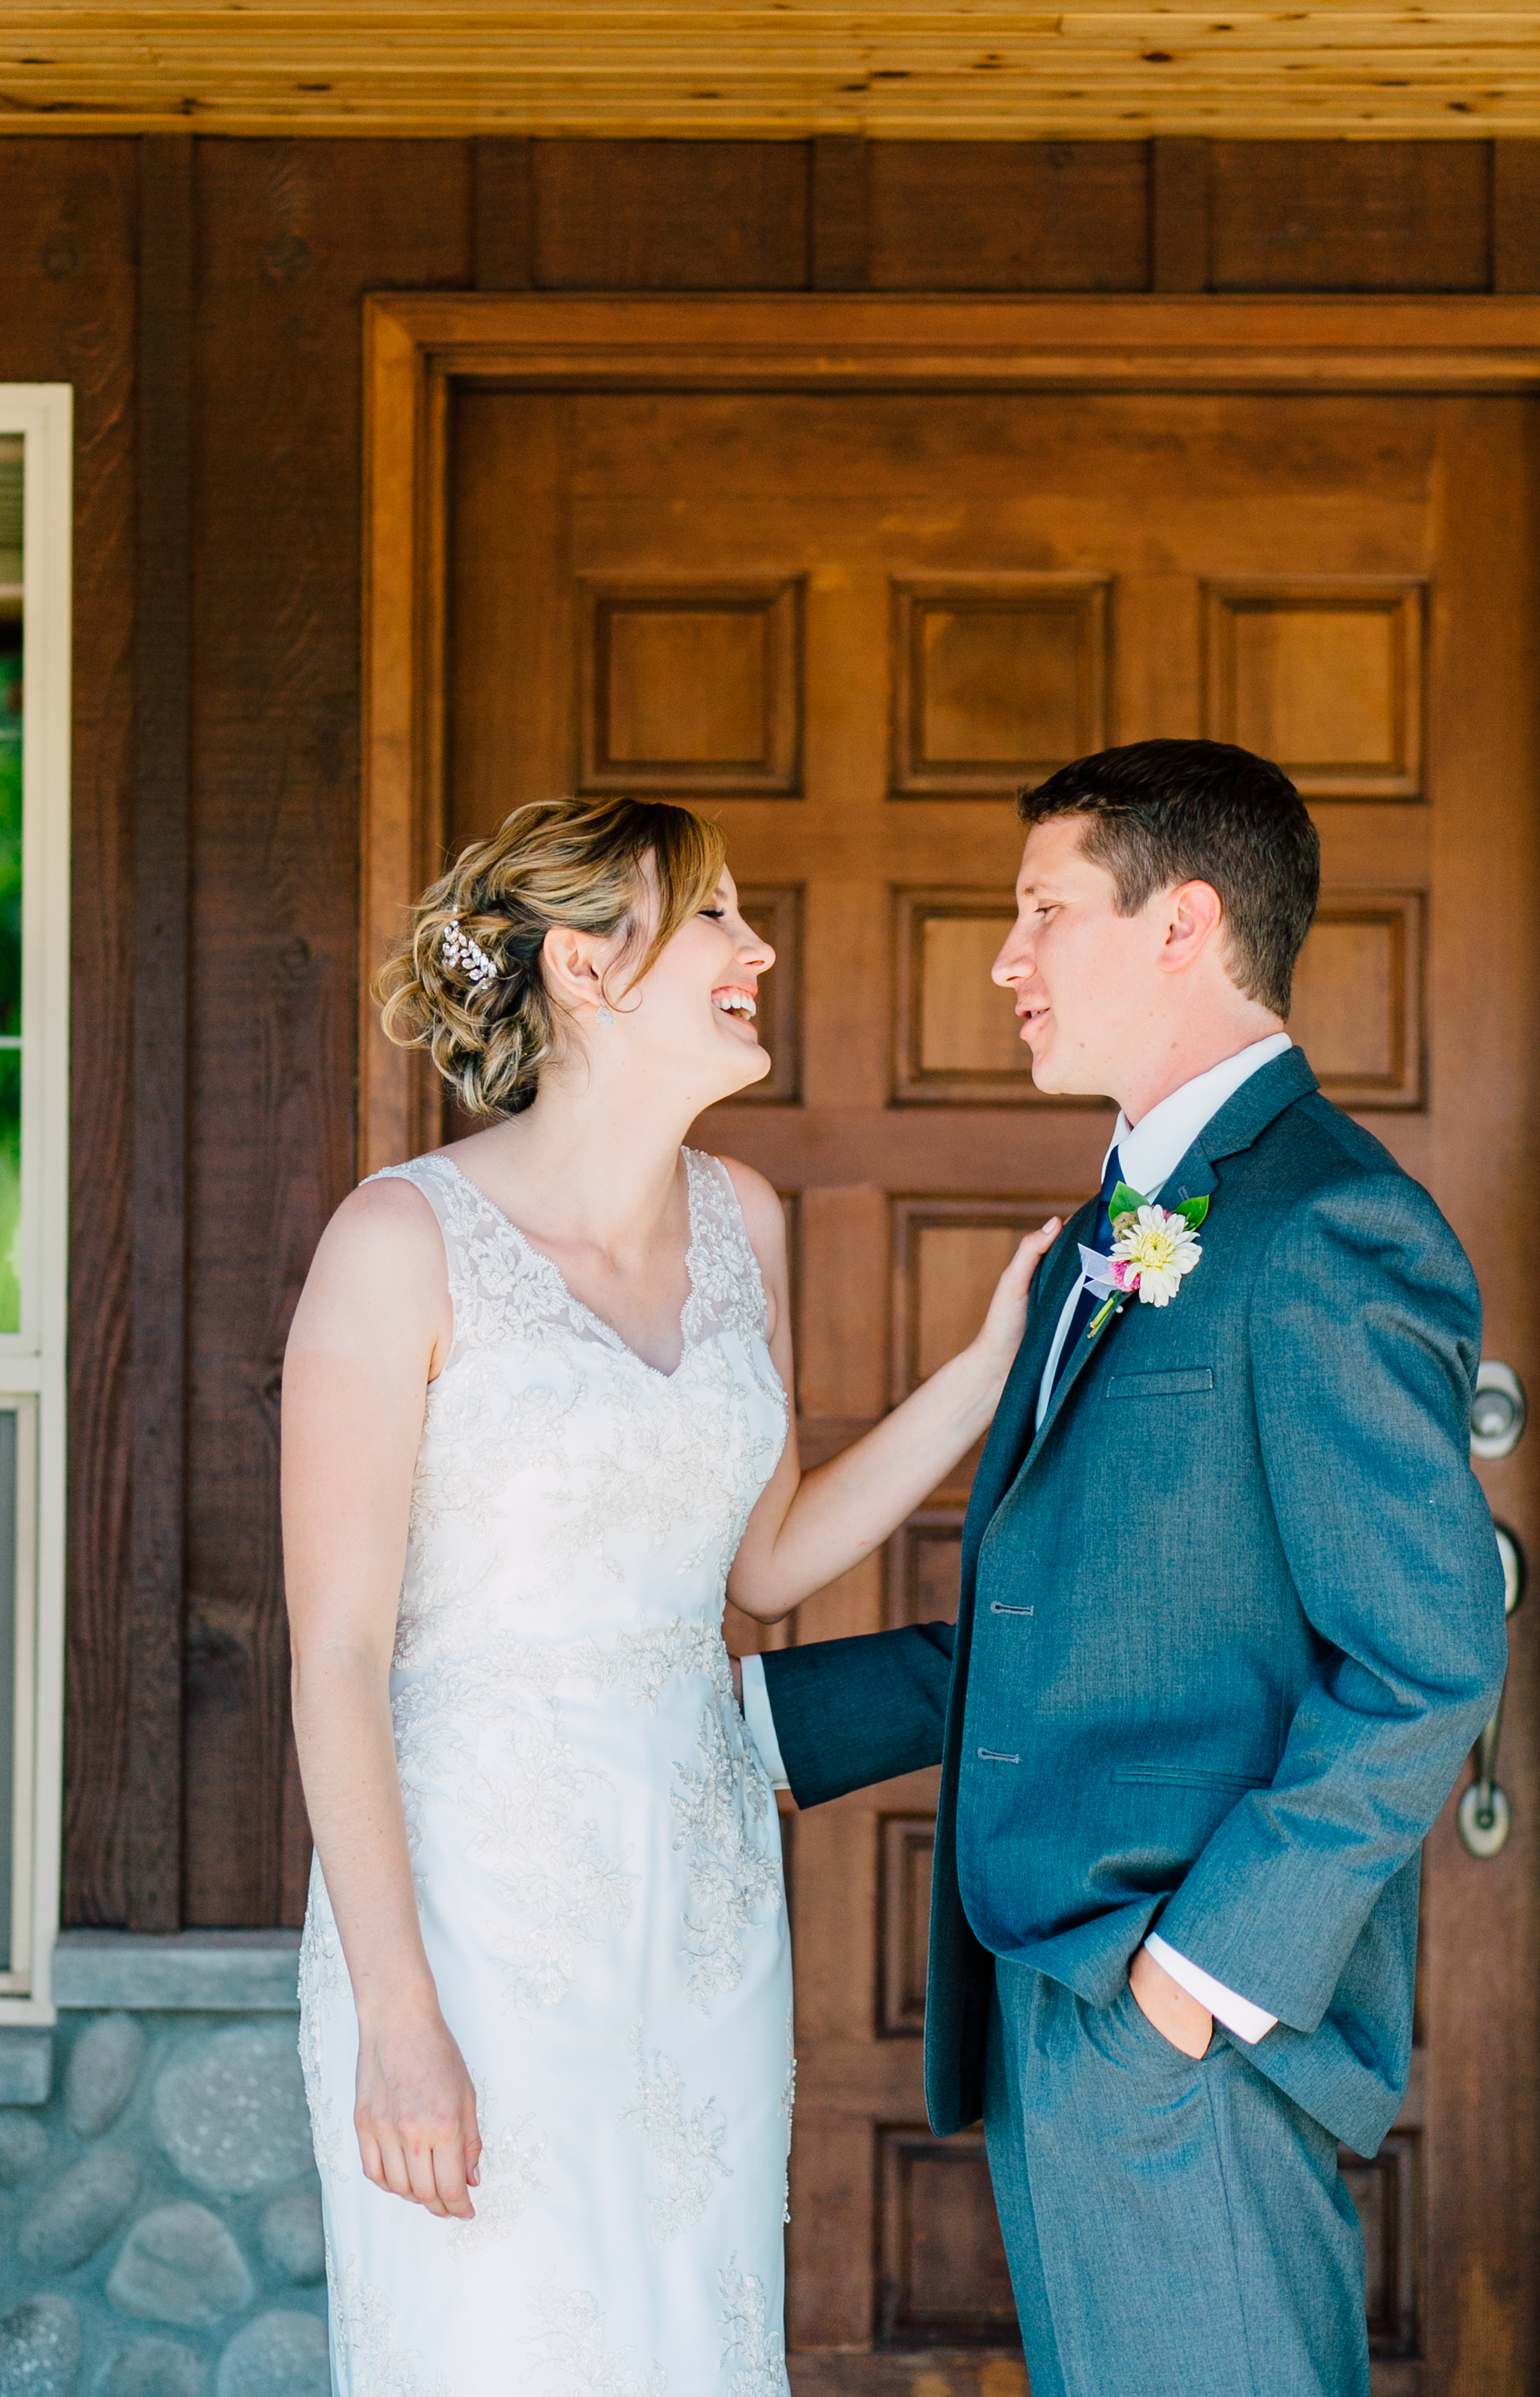 017-bellingham-wedding-photographer-samson-winery-katheryn-moran.jpg